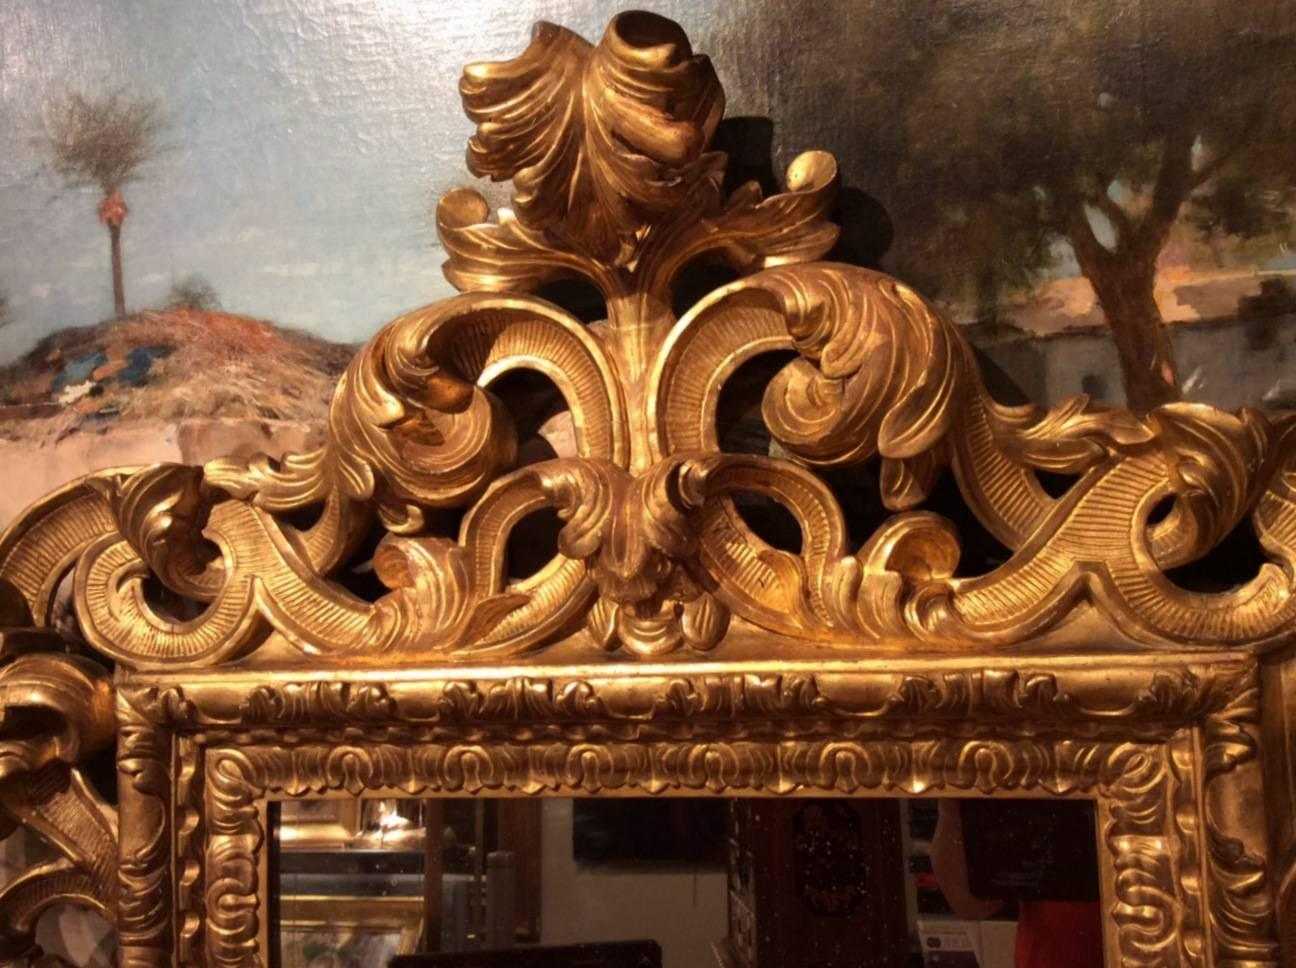 18th century baroque italian mirror at 1stdibs for Baroque italien